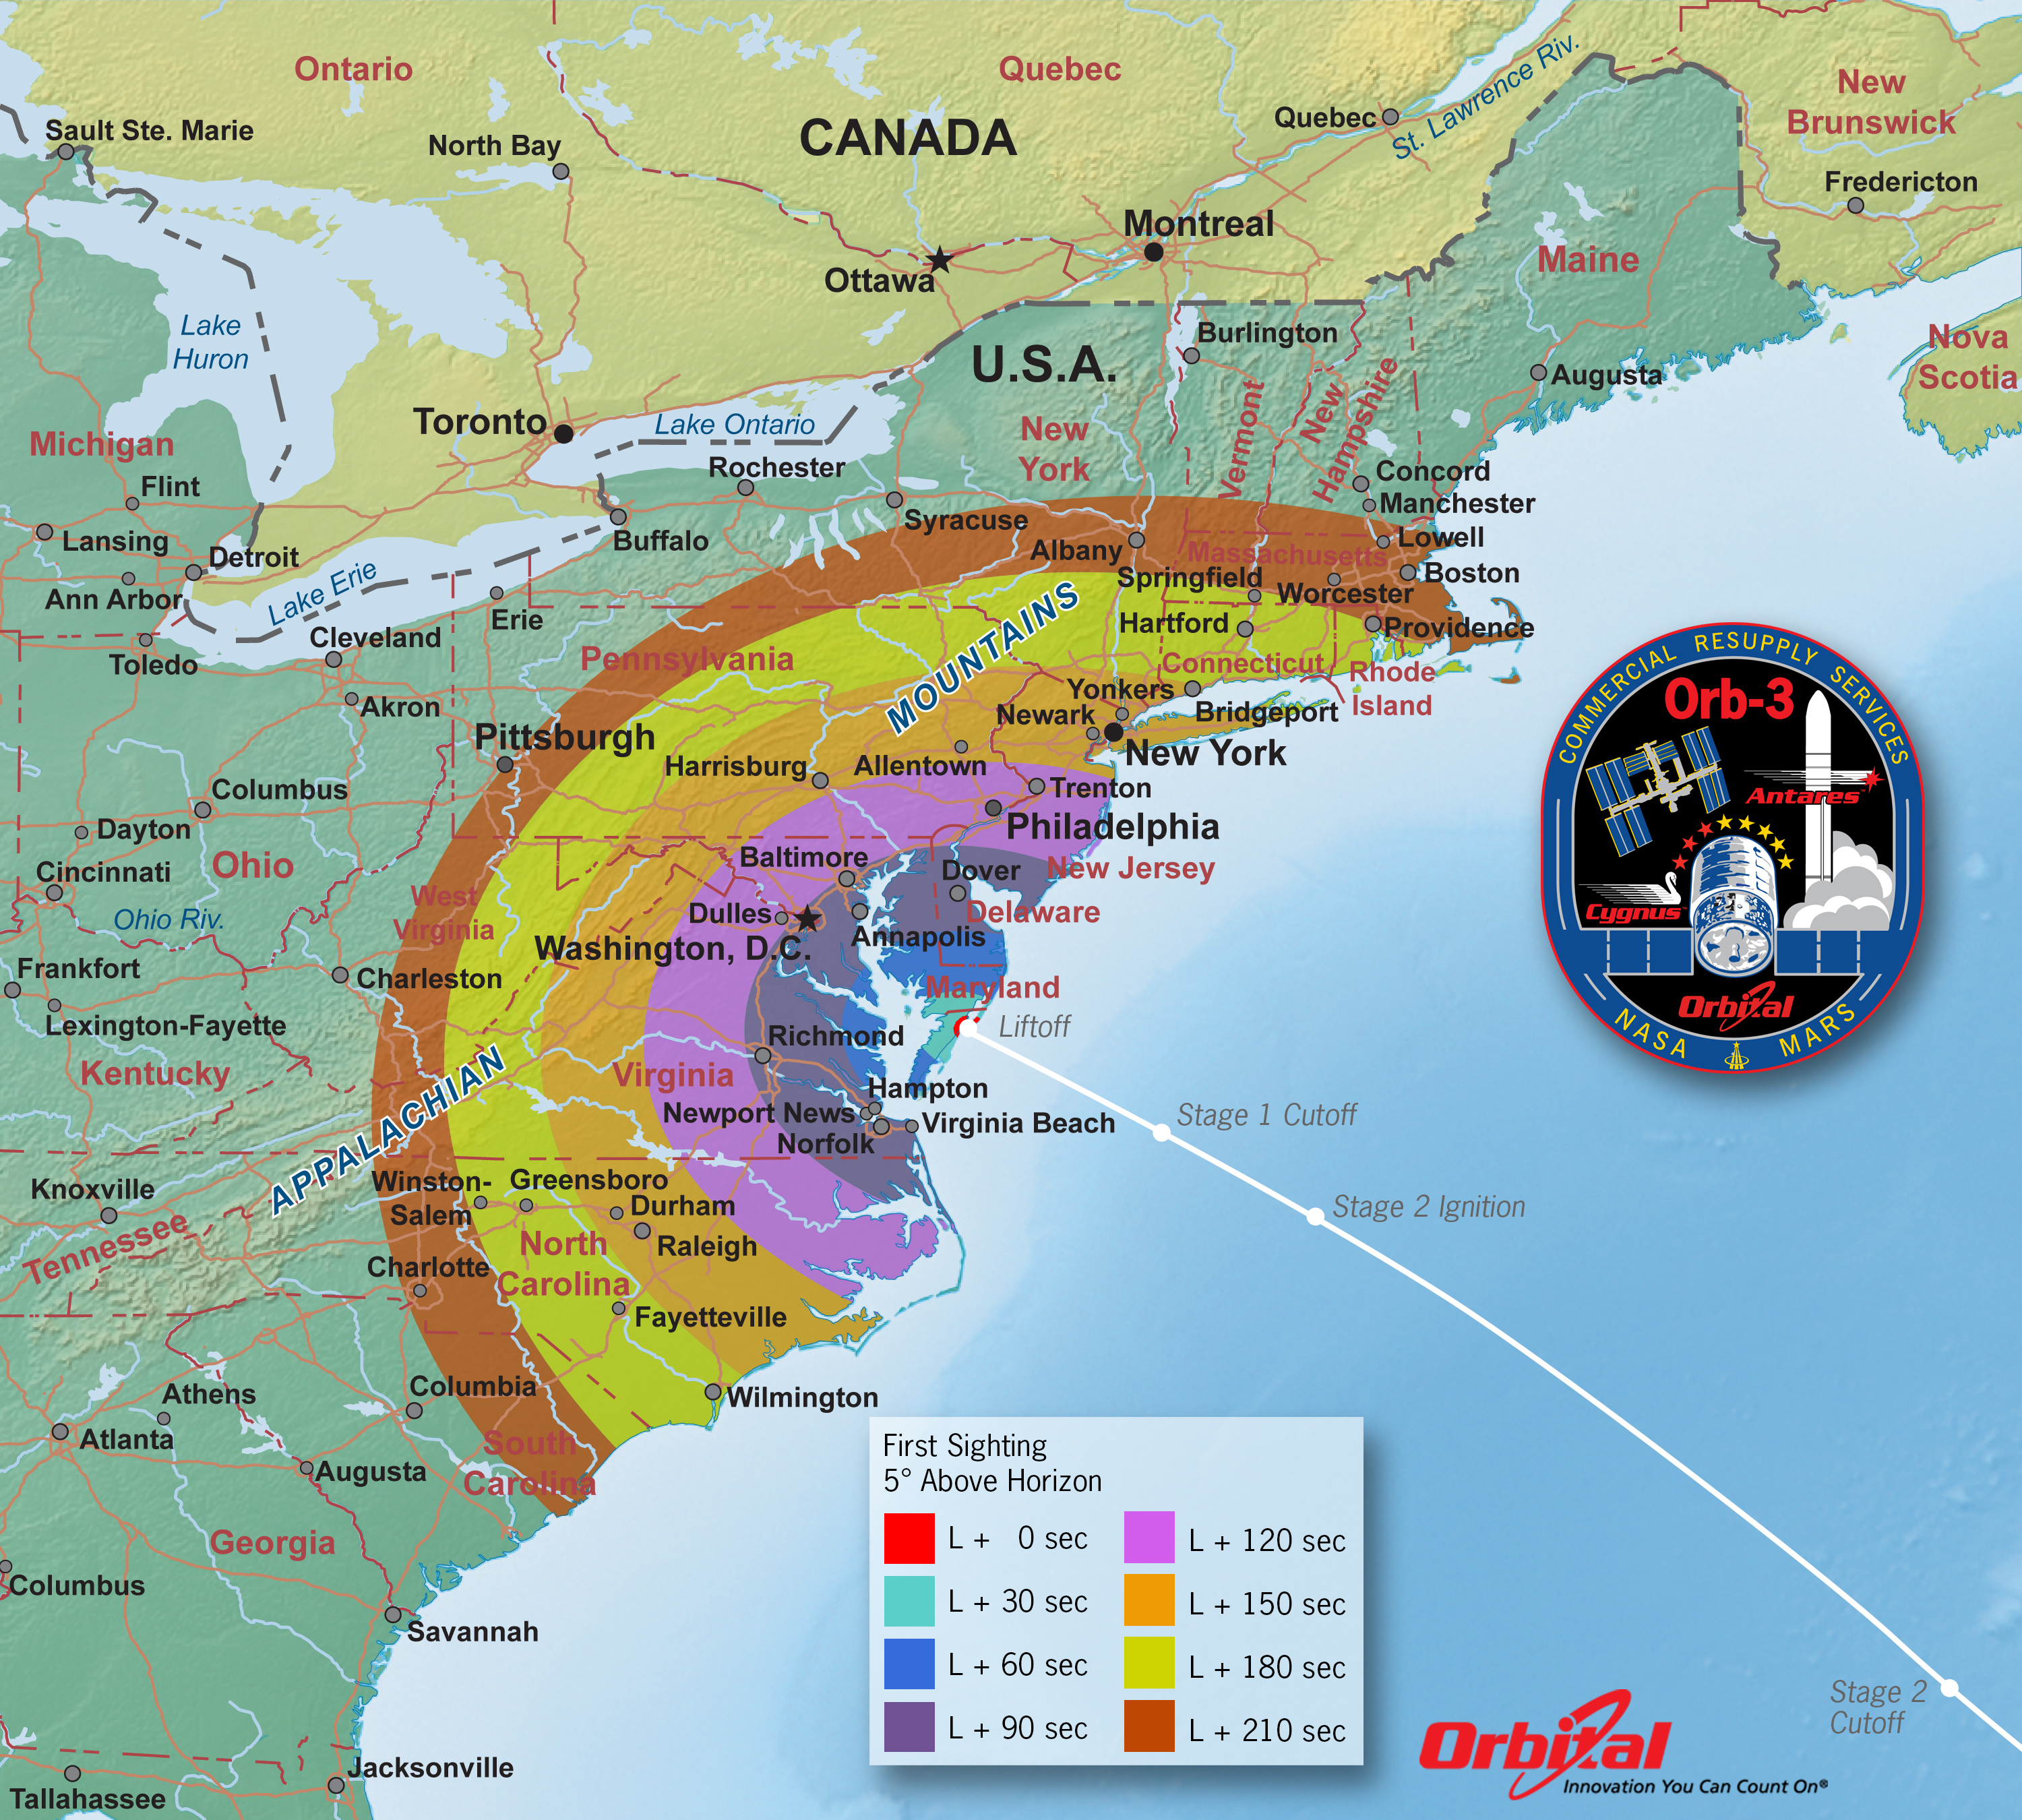 Orbital 3 Launch Viewing Map     First Sight   NASA Orbital 3 Launch Viewing Map     First Sight